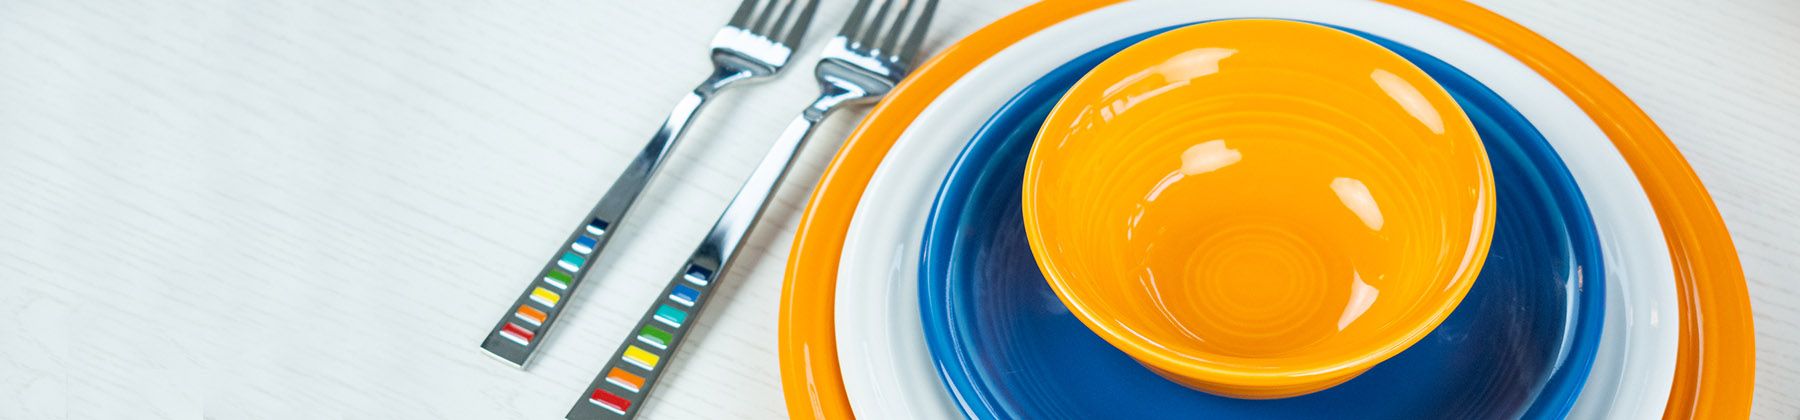 Photo of Fiesta Dinnerware featuring Butterscotch, Lapis, and White.